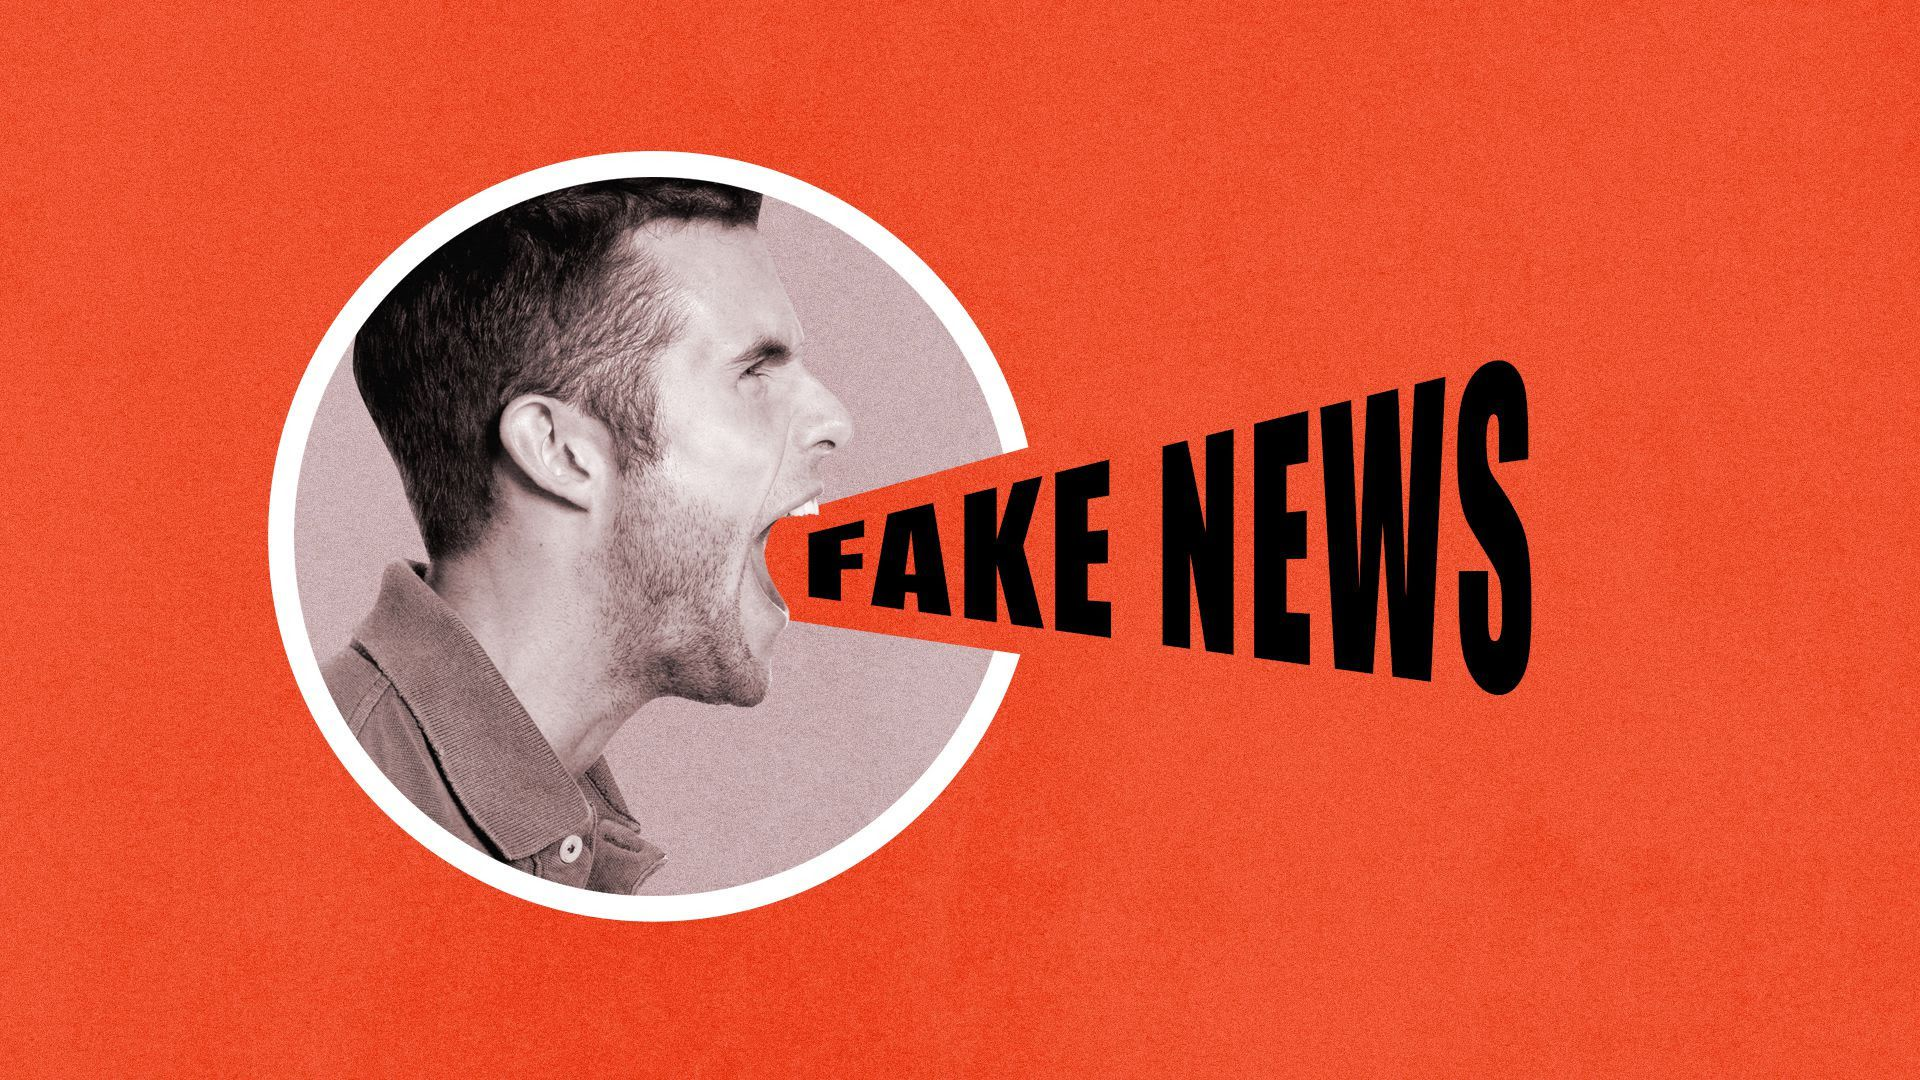 The changing face of disinformation: It's increasingly being spread by willing human actors